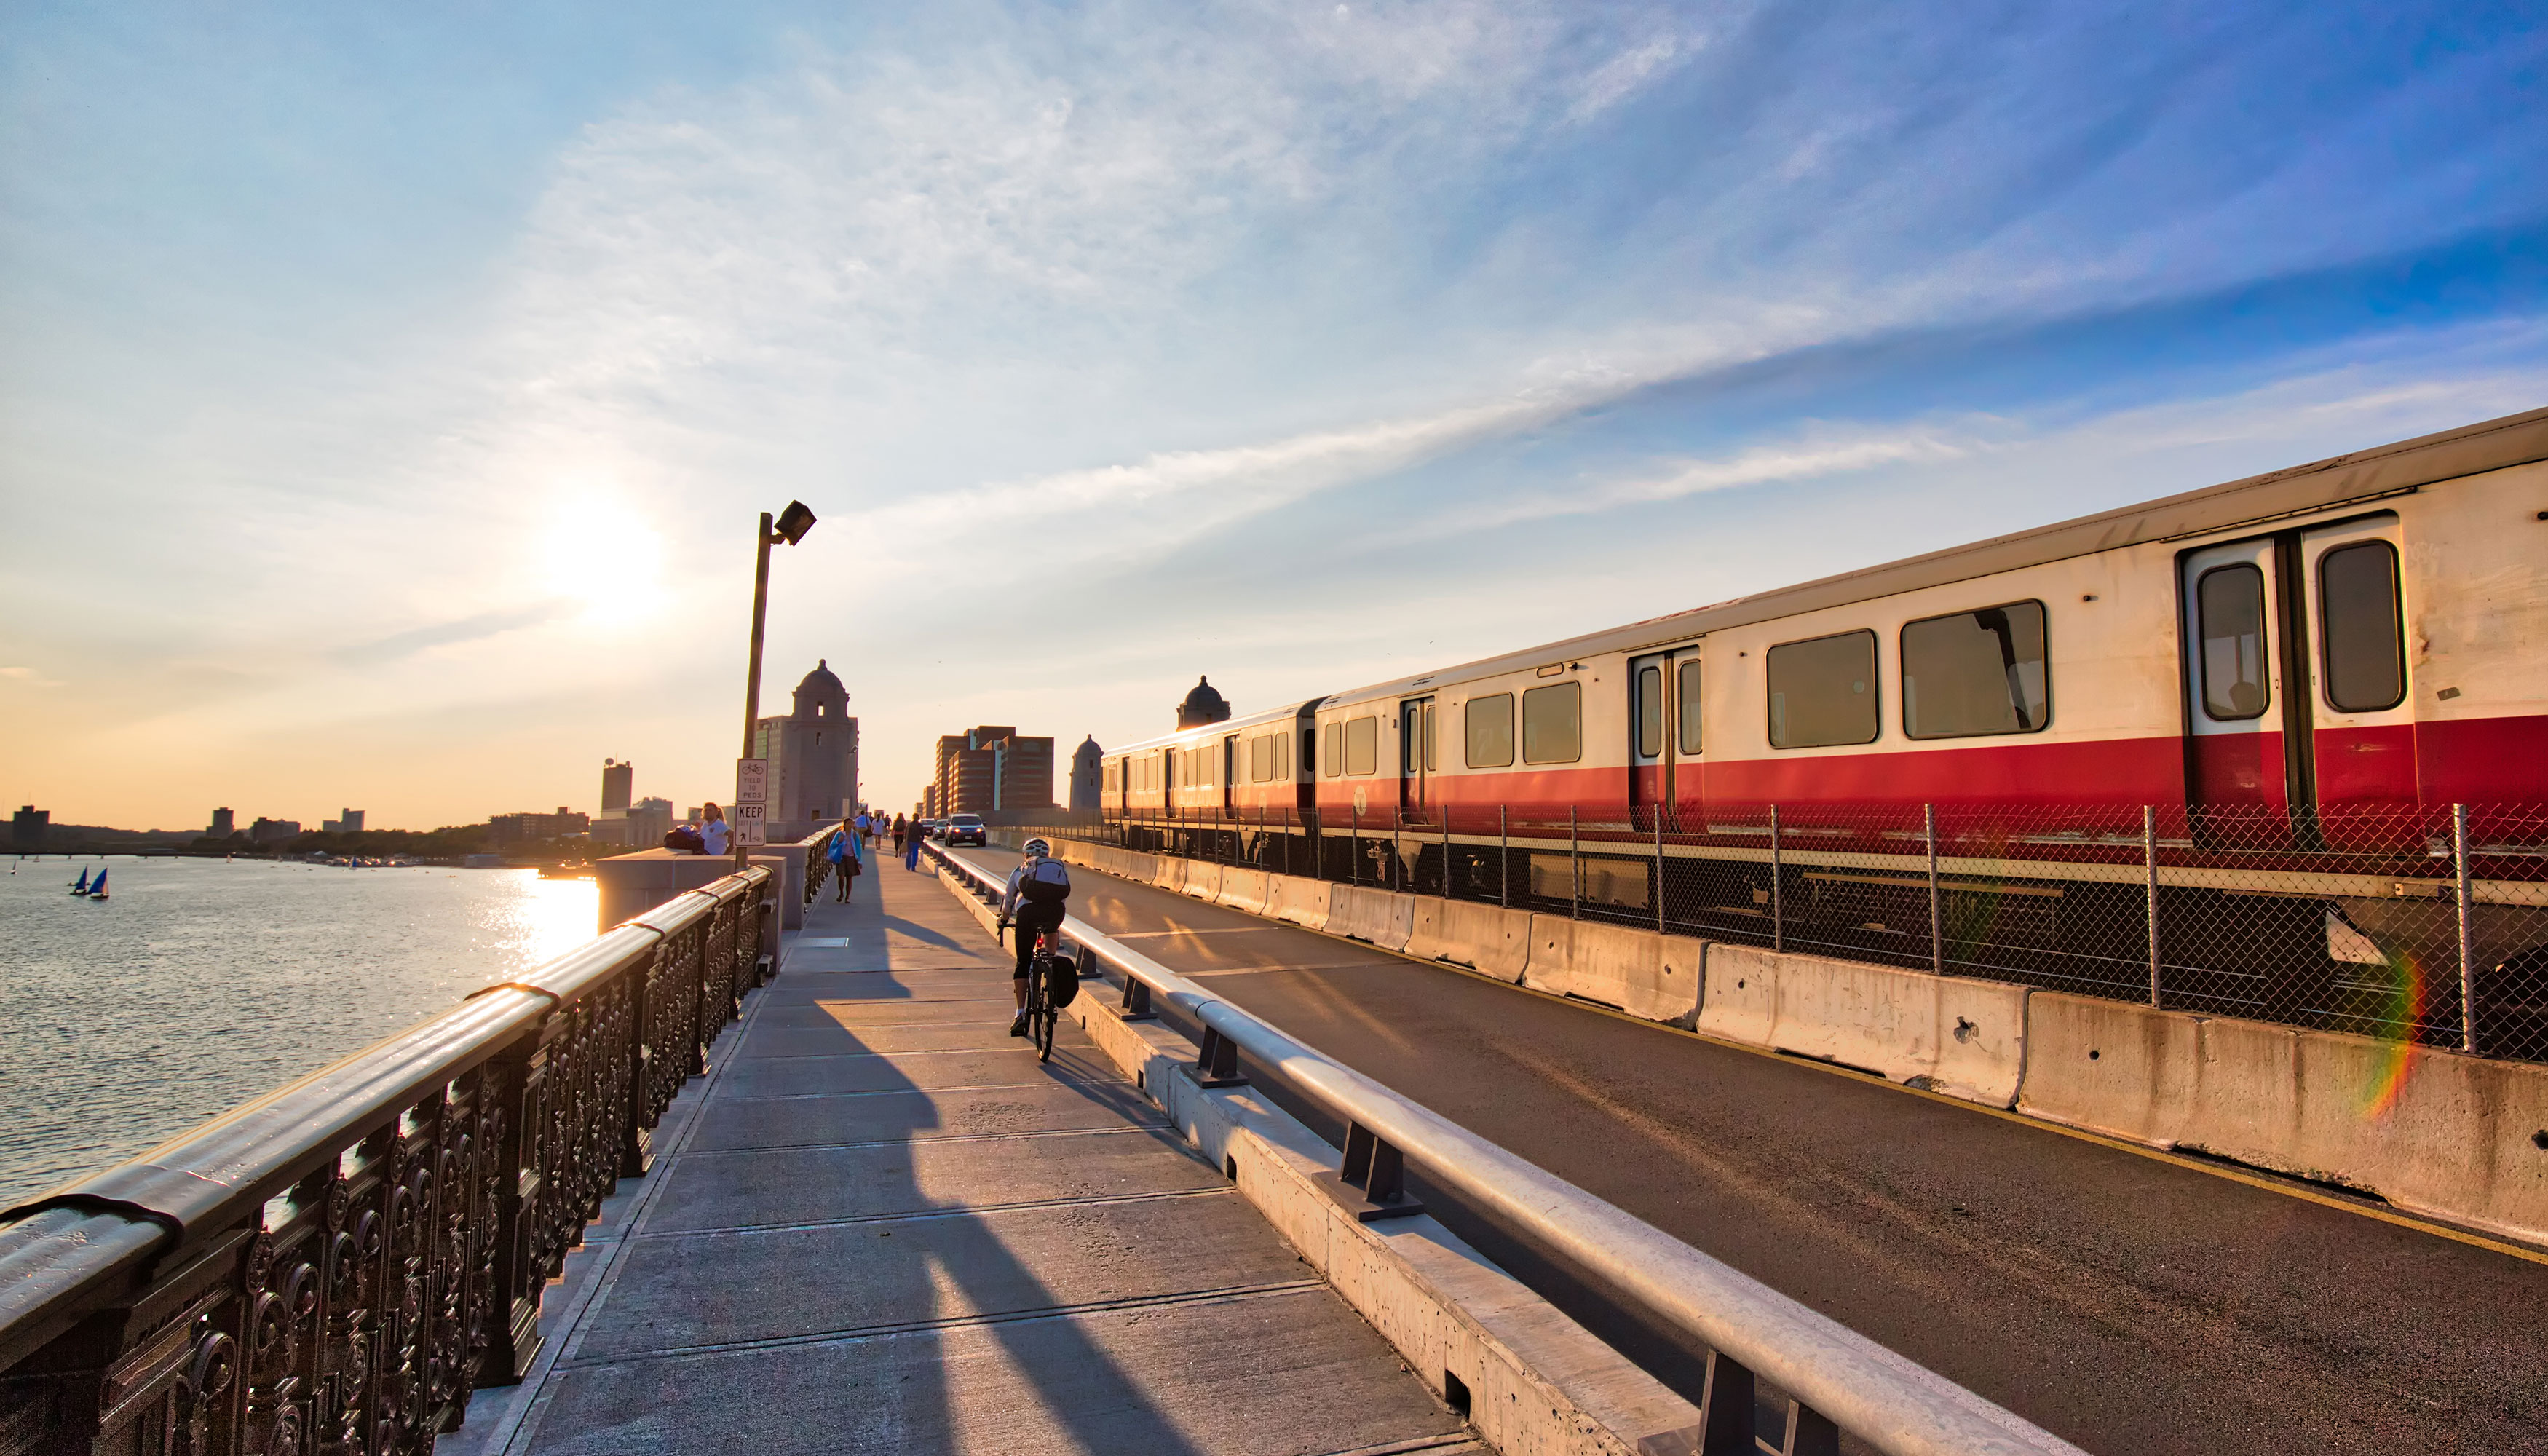 Boston train rides on a track with a view of a river on the left side along with a sunset.